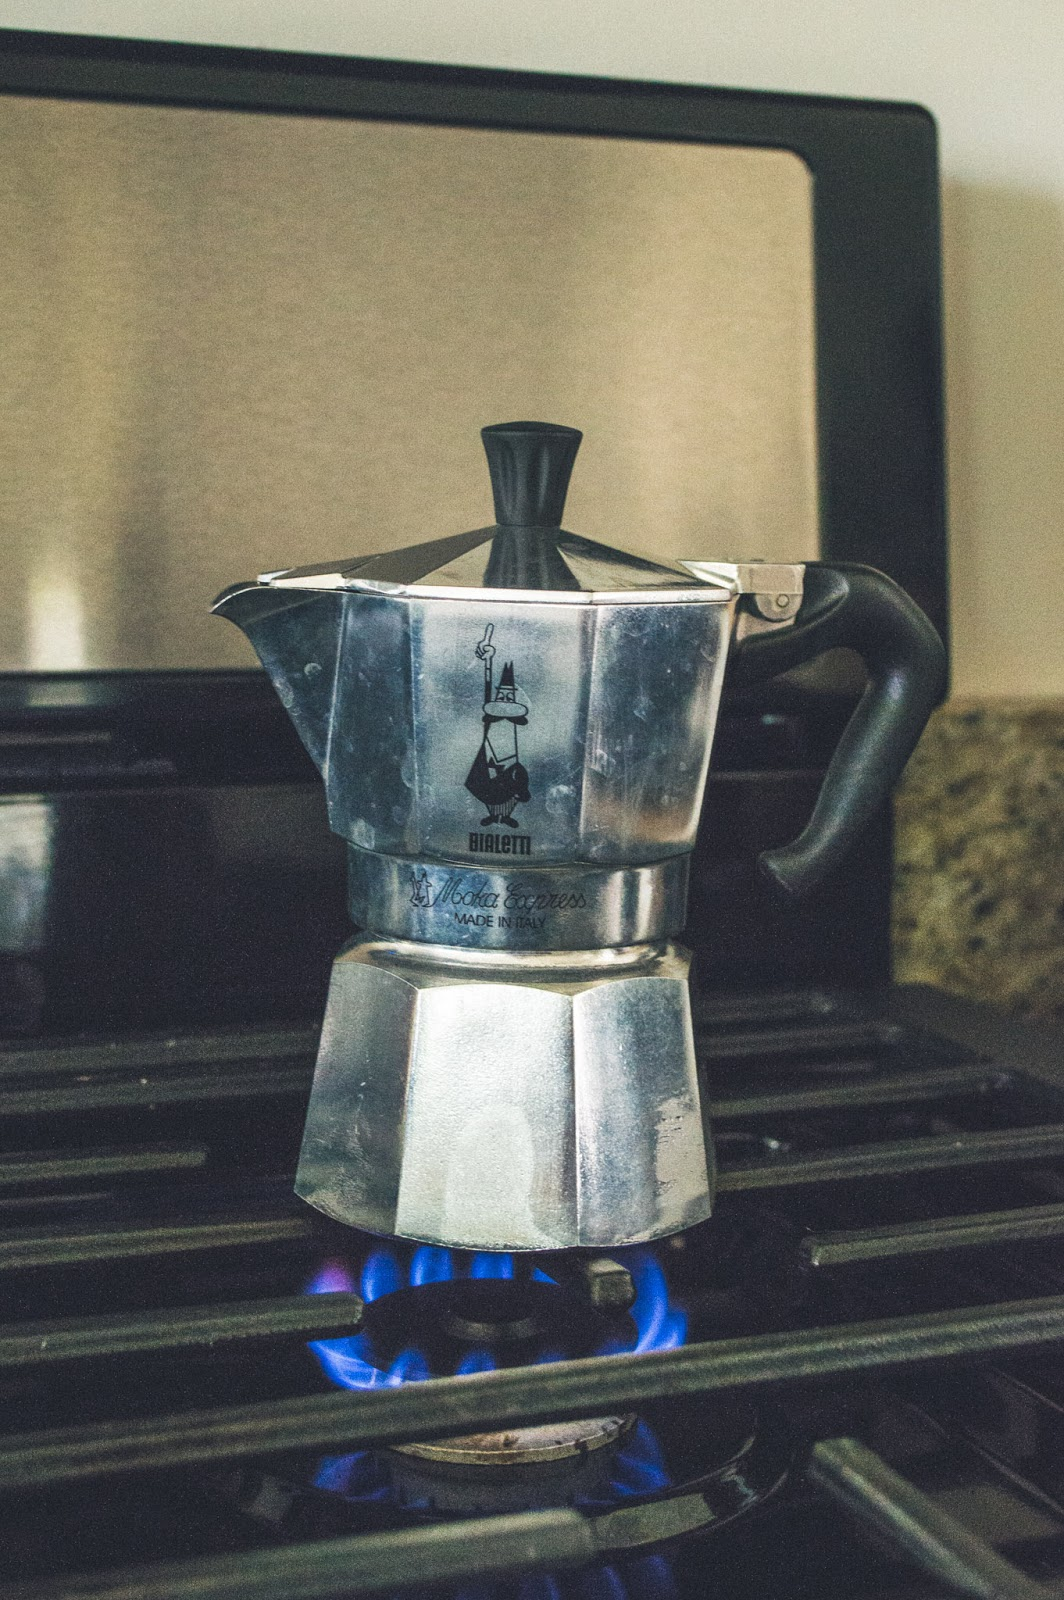 Bialetti Moka Pot on stove